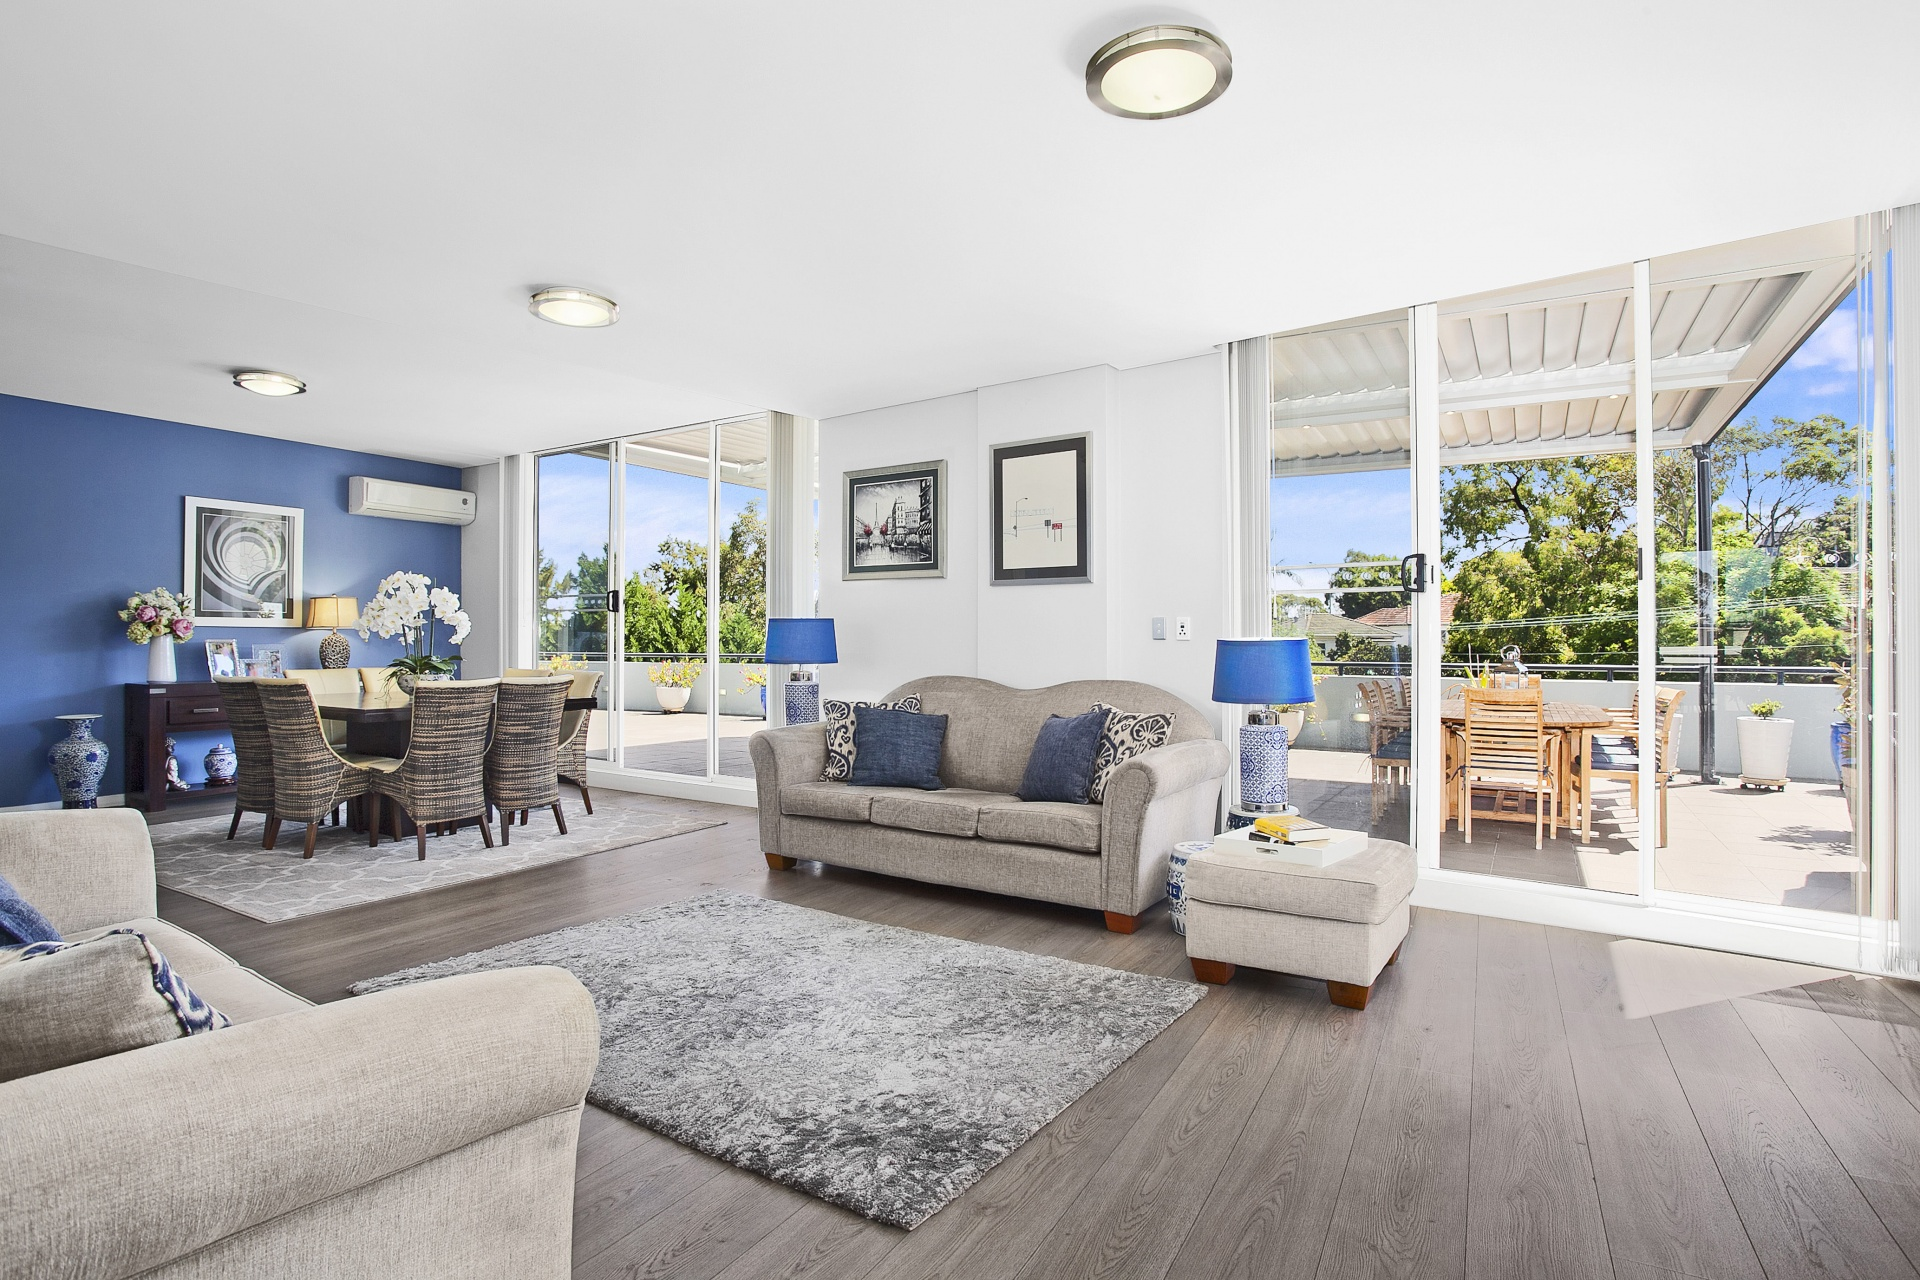 3 Bedrooms, Apartment, Sold , Mercer Street, 2 Bathrooms, Listing ID 1129, Castle Hill, NSW, Australia,